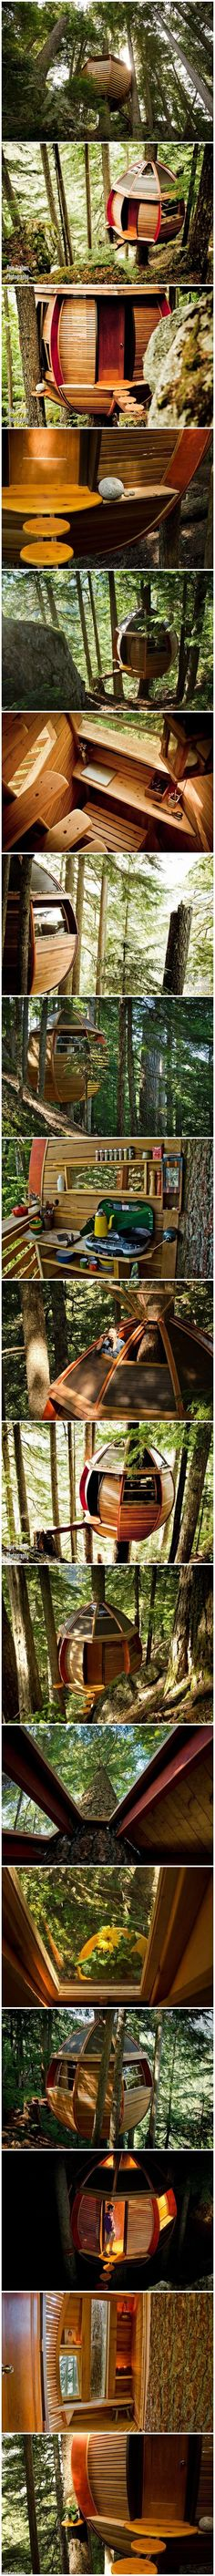 Doesn't get too much cooler than this: Hidden Egg Tree house, Vancouver Island.